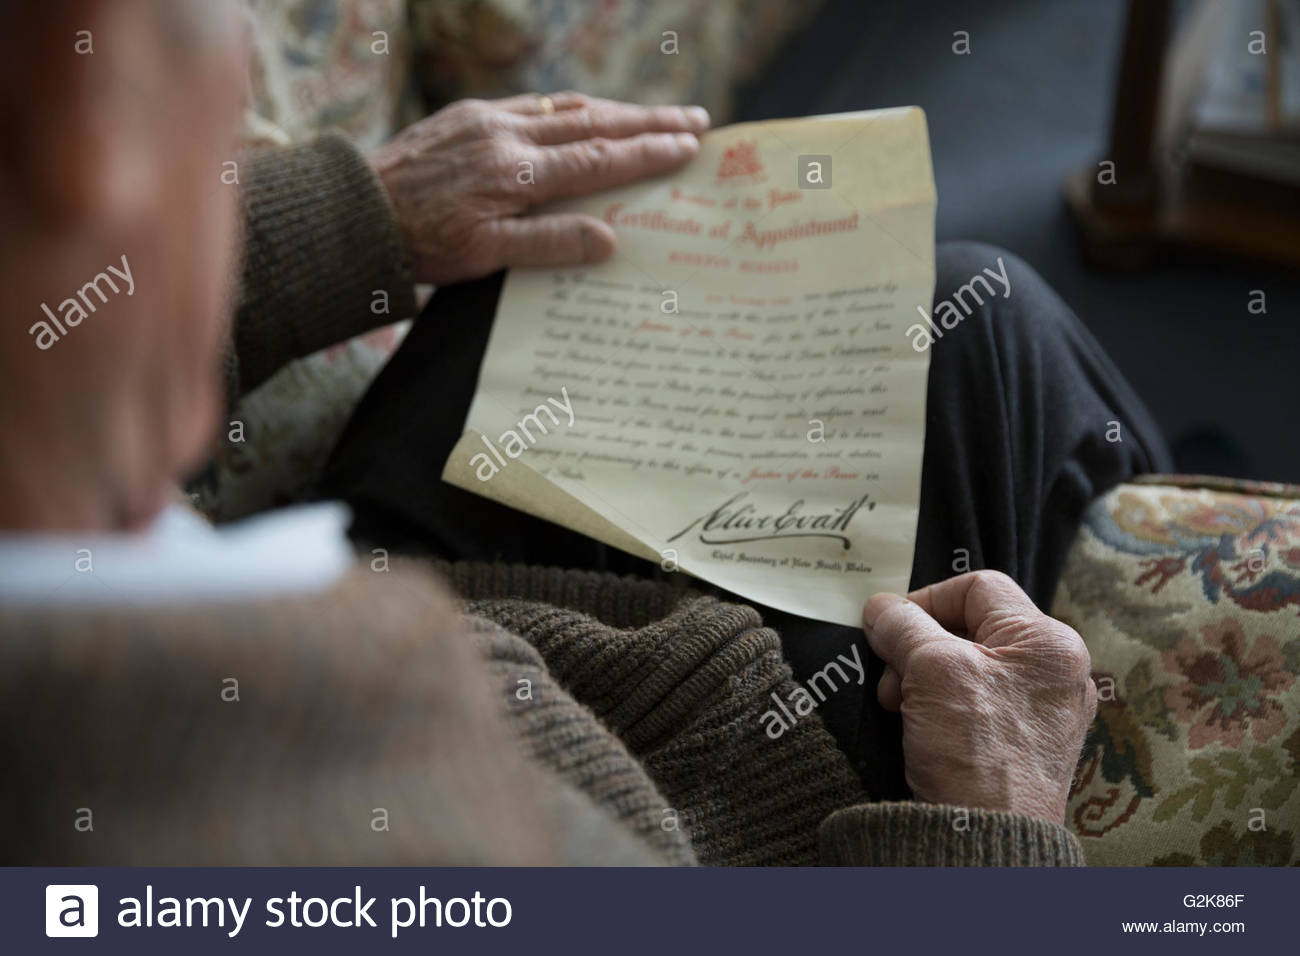 Senior man reading old military certificate of appointment letter - Stock Image